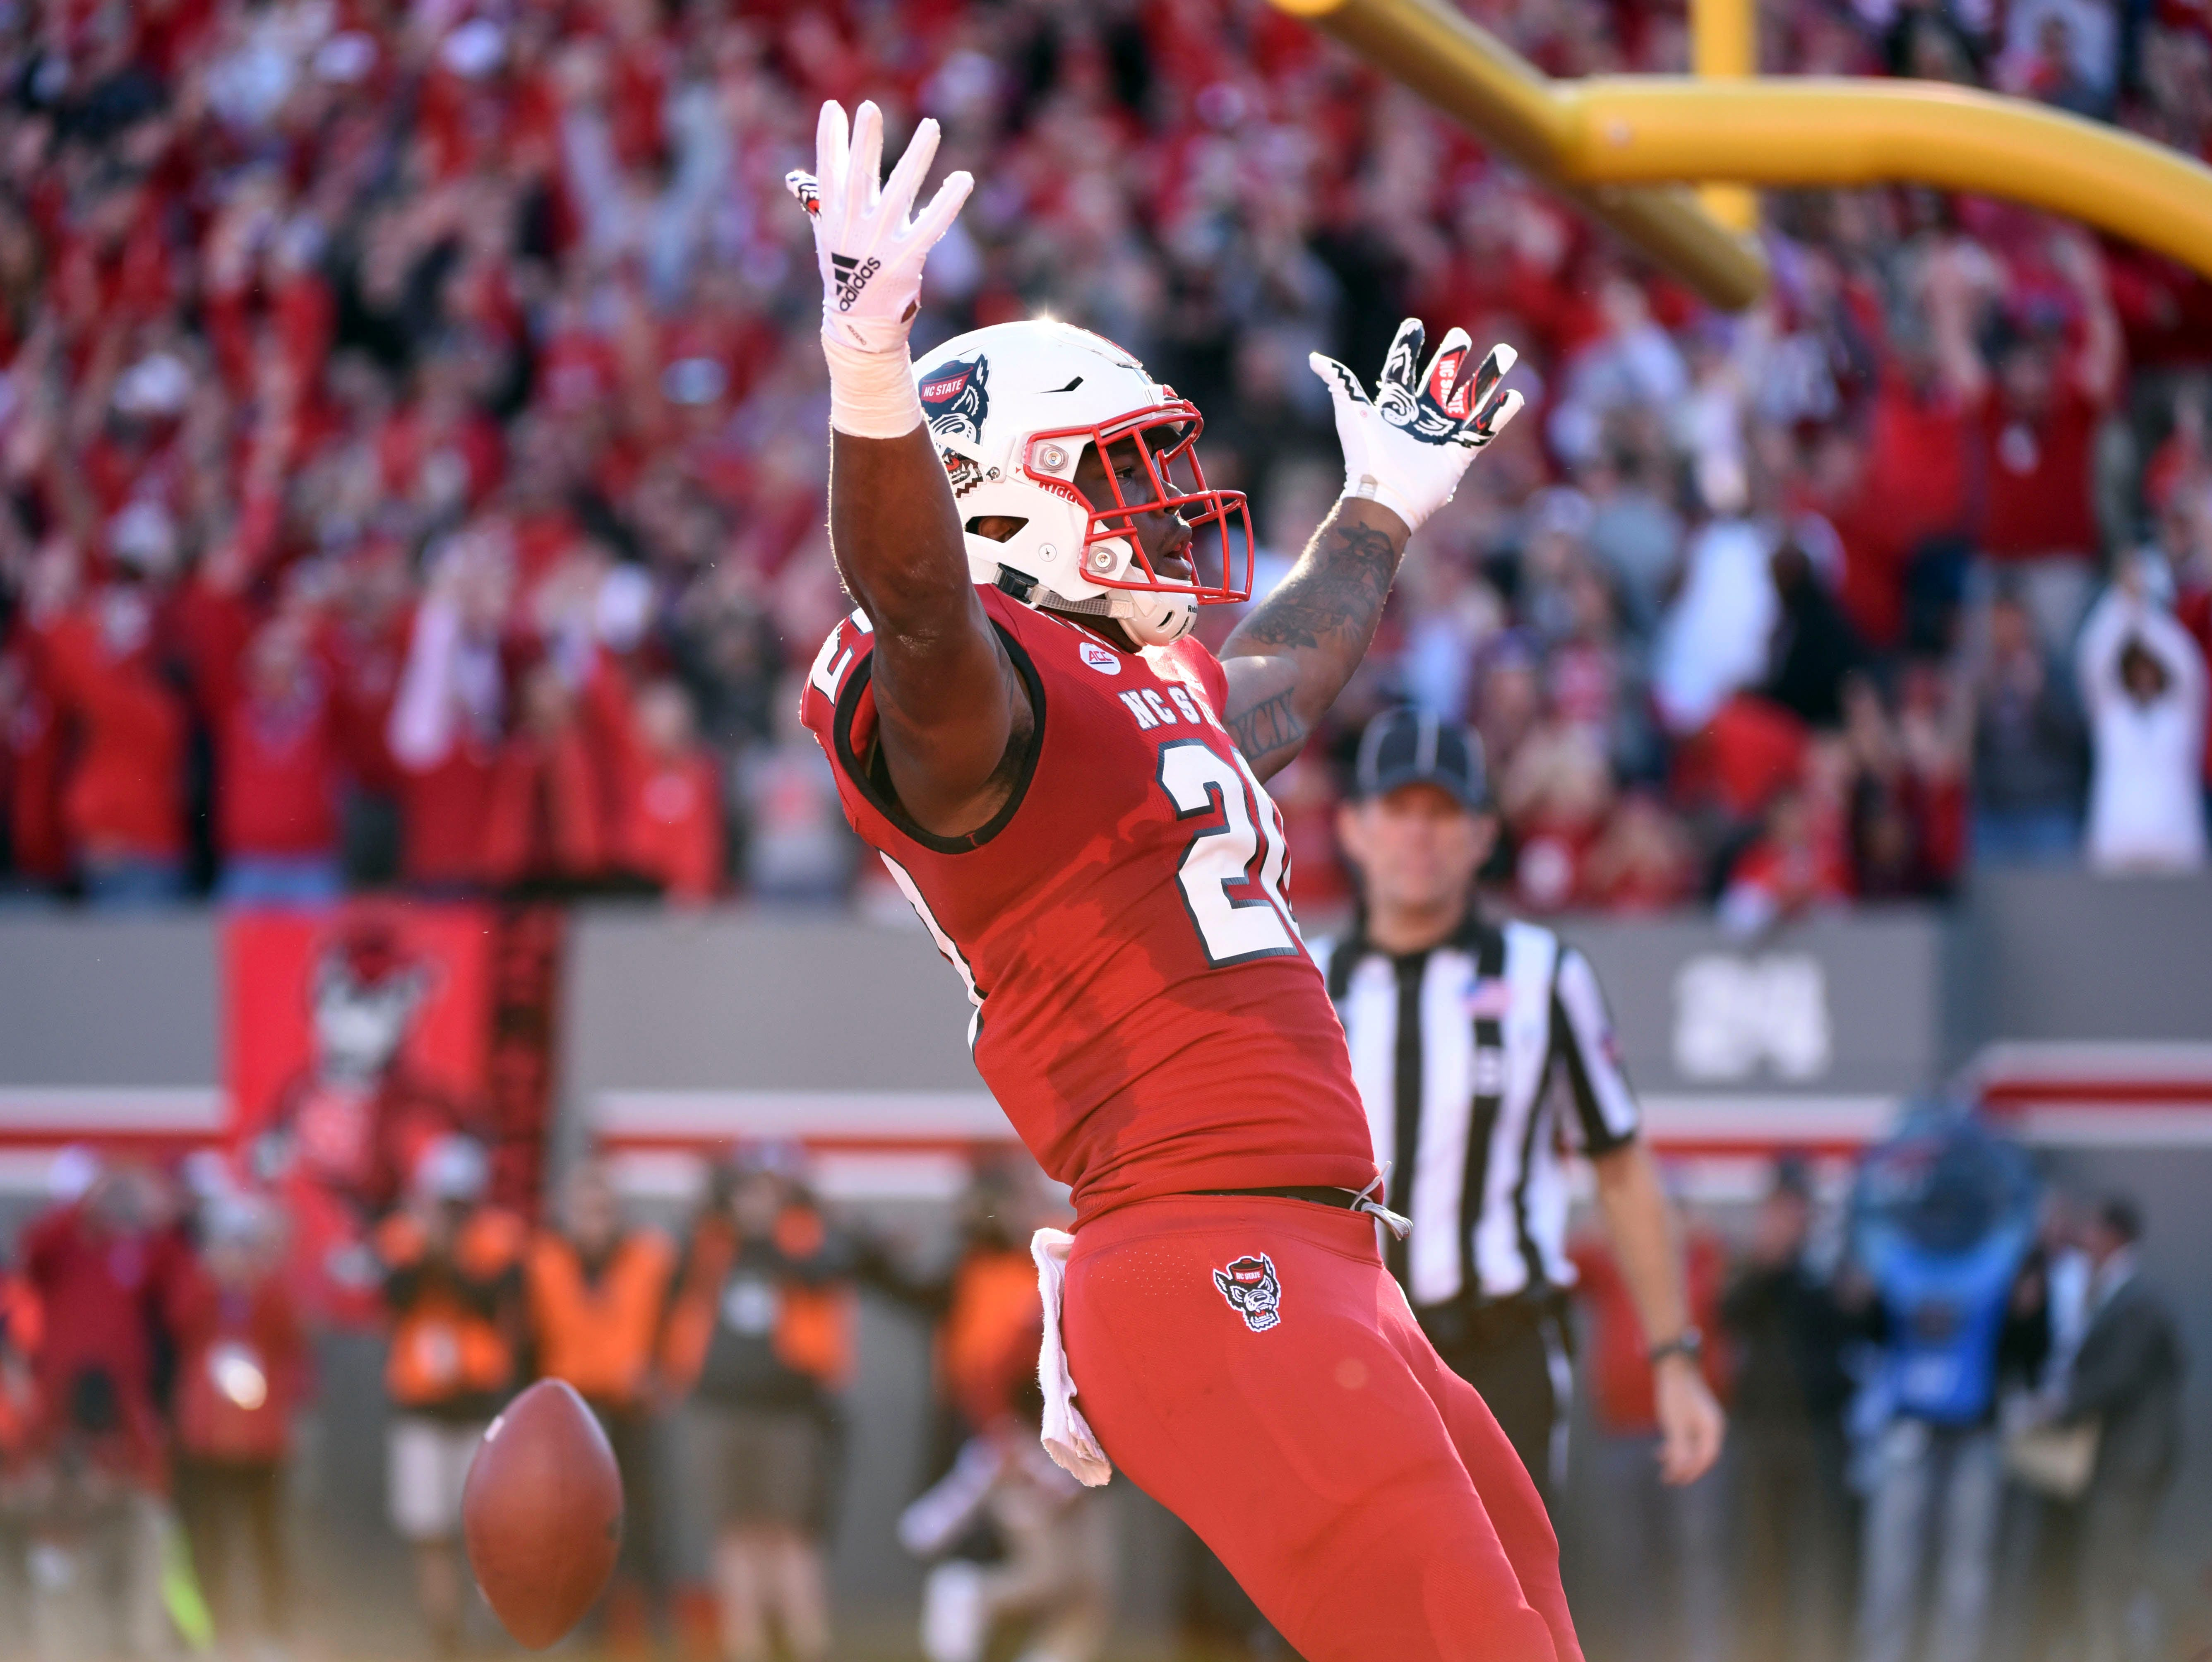 Nov 3, 2018; Raleigh, NC, USA; North Carolina State Wolfpack running back Ricky Person Jr. (20) celebrates a touchdown during the first half against the Florida State Seminoles at Carter-Finley Stadium. Mandatory Credit: Rob Kinnan-USA TODAY Sports